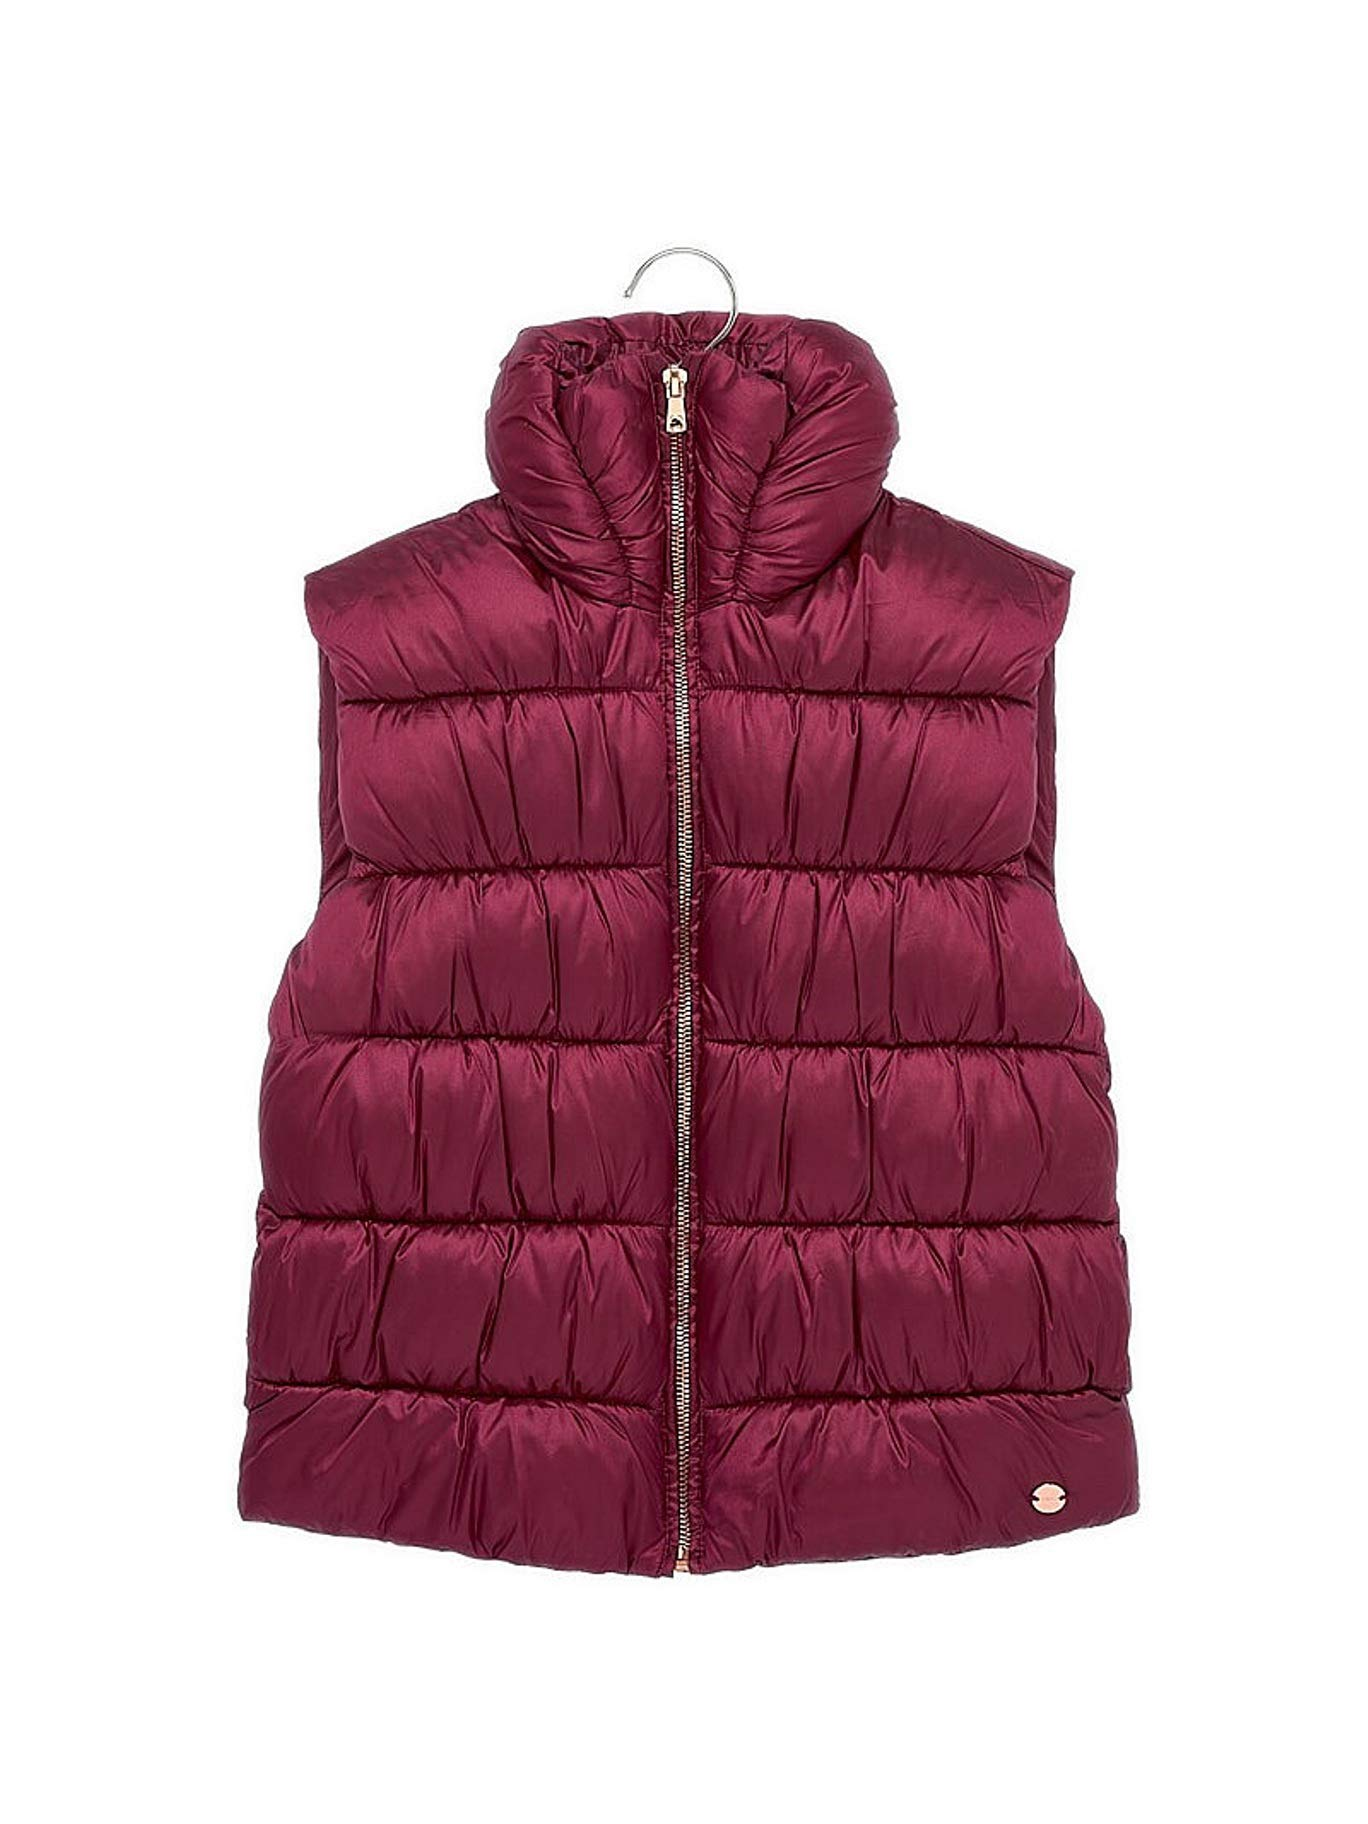 Mayoral 19-07307-039 - Padded Vest for Girls 14 Years Ruby by Mayoral